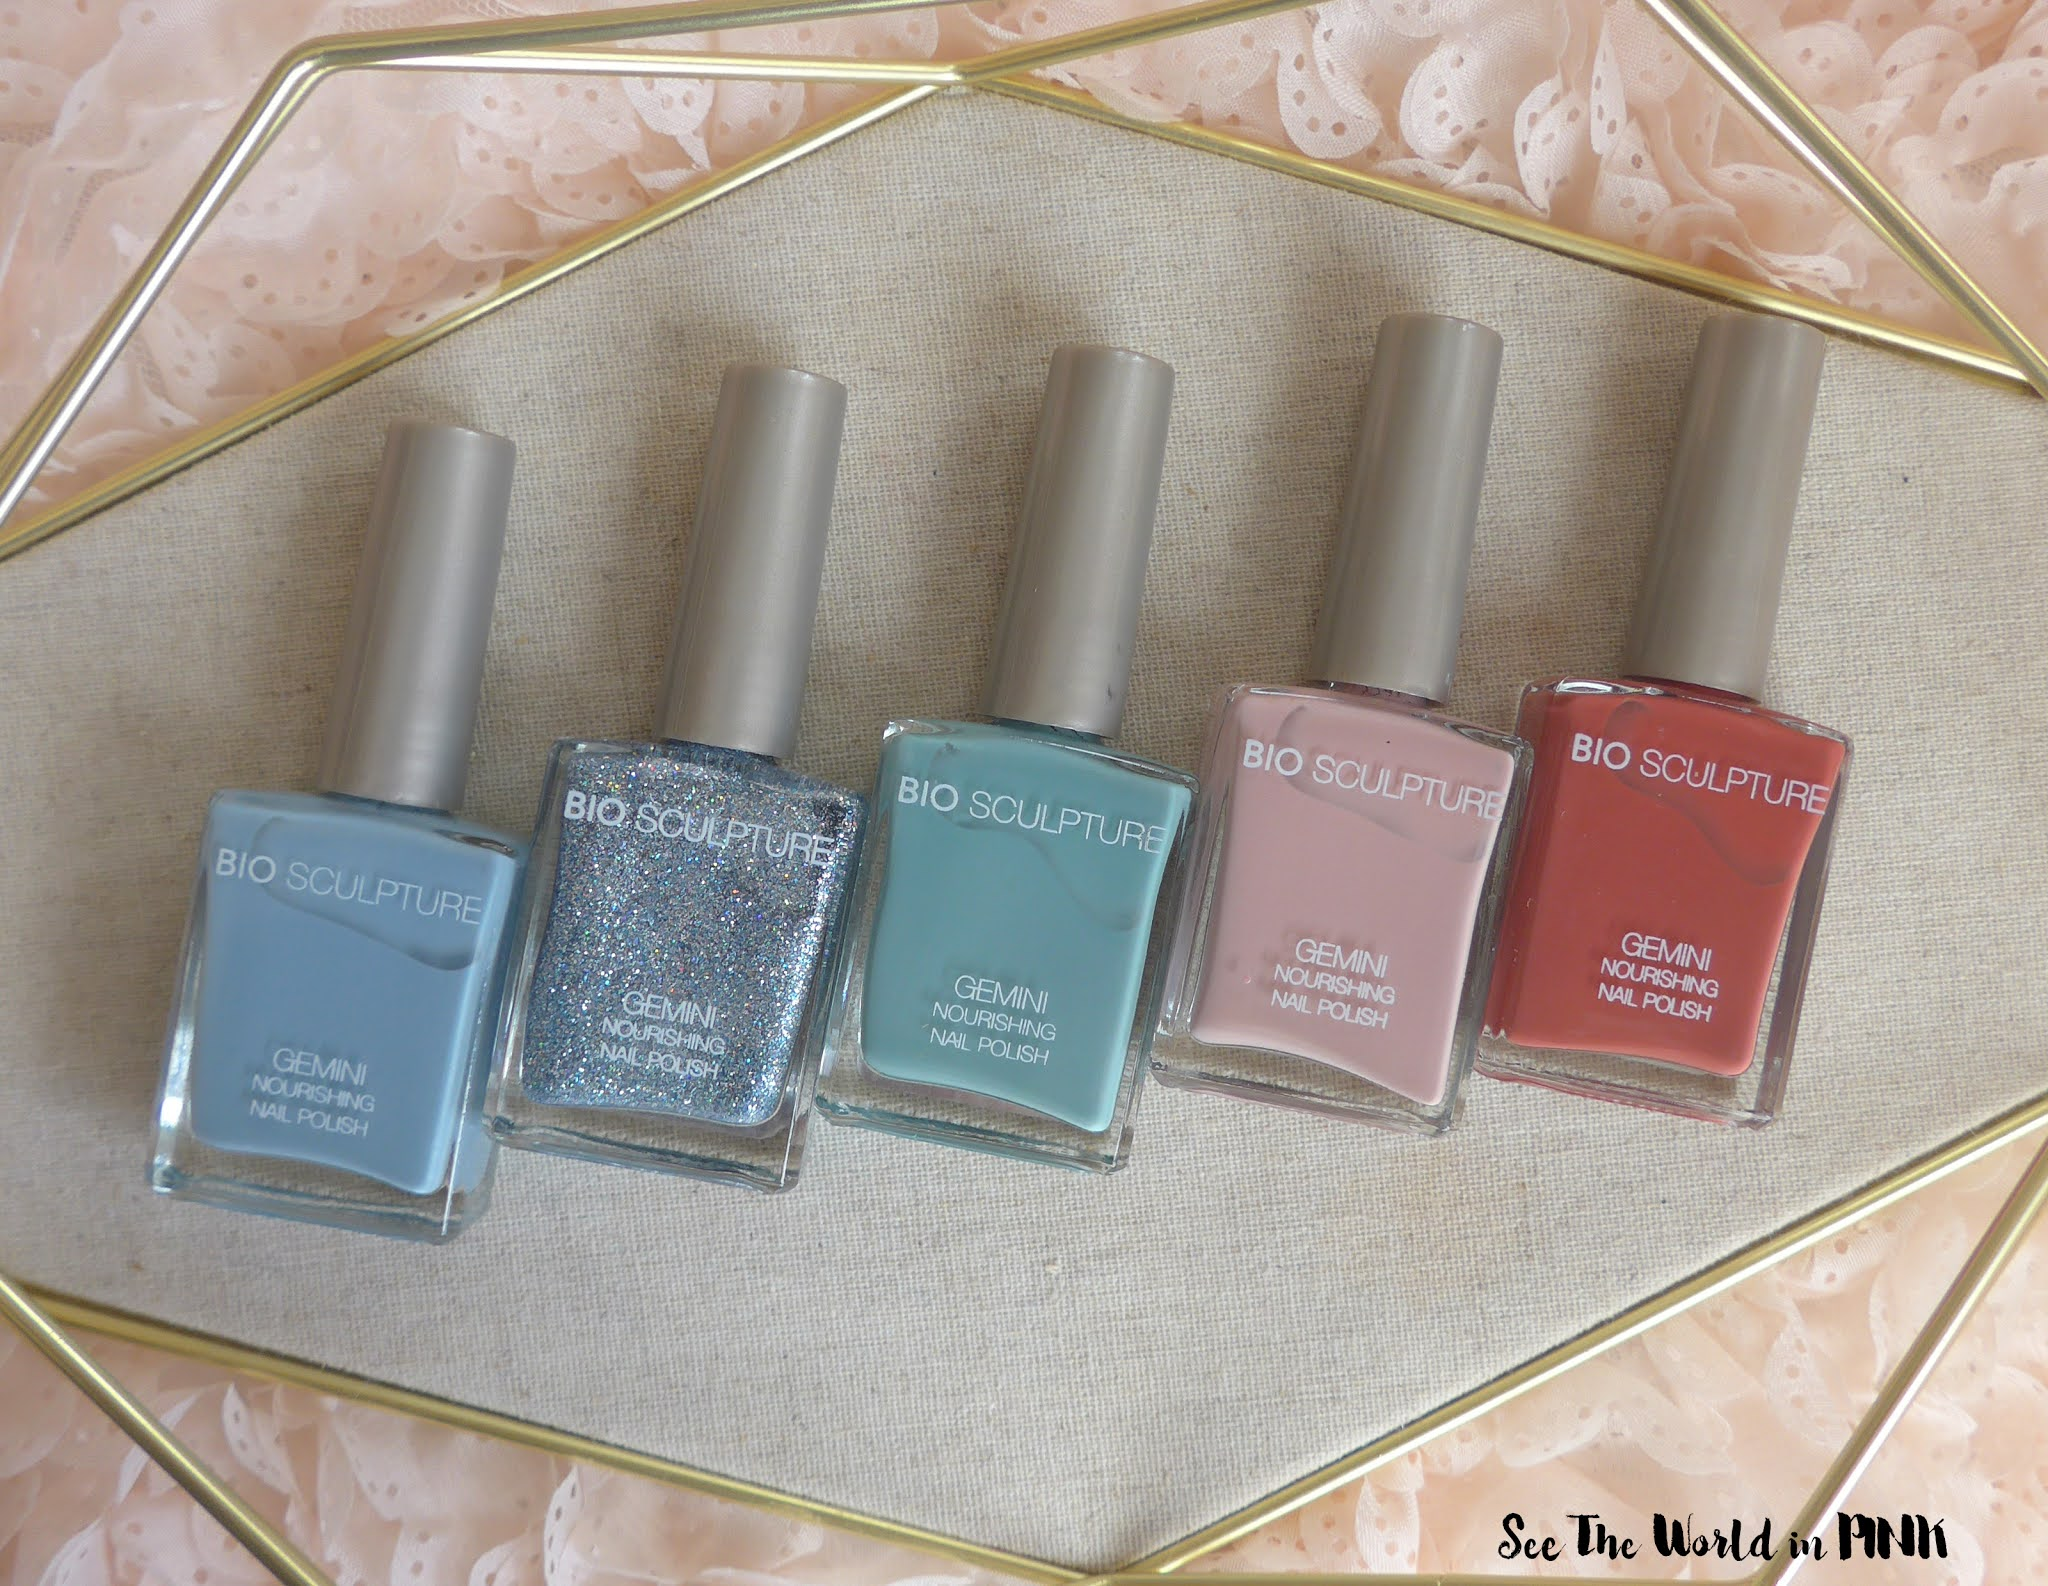 Bio Sculpture Vintage Poetry Polish Collection